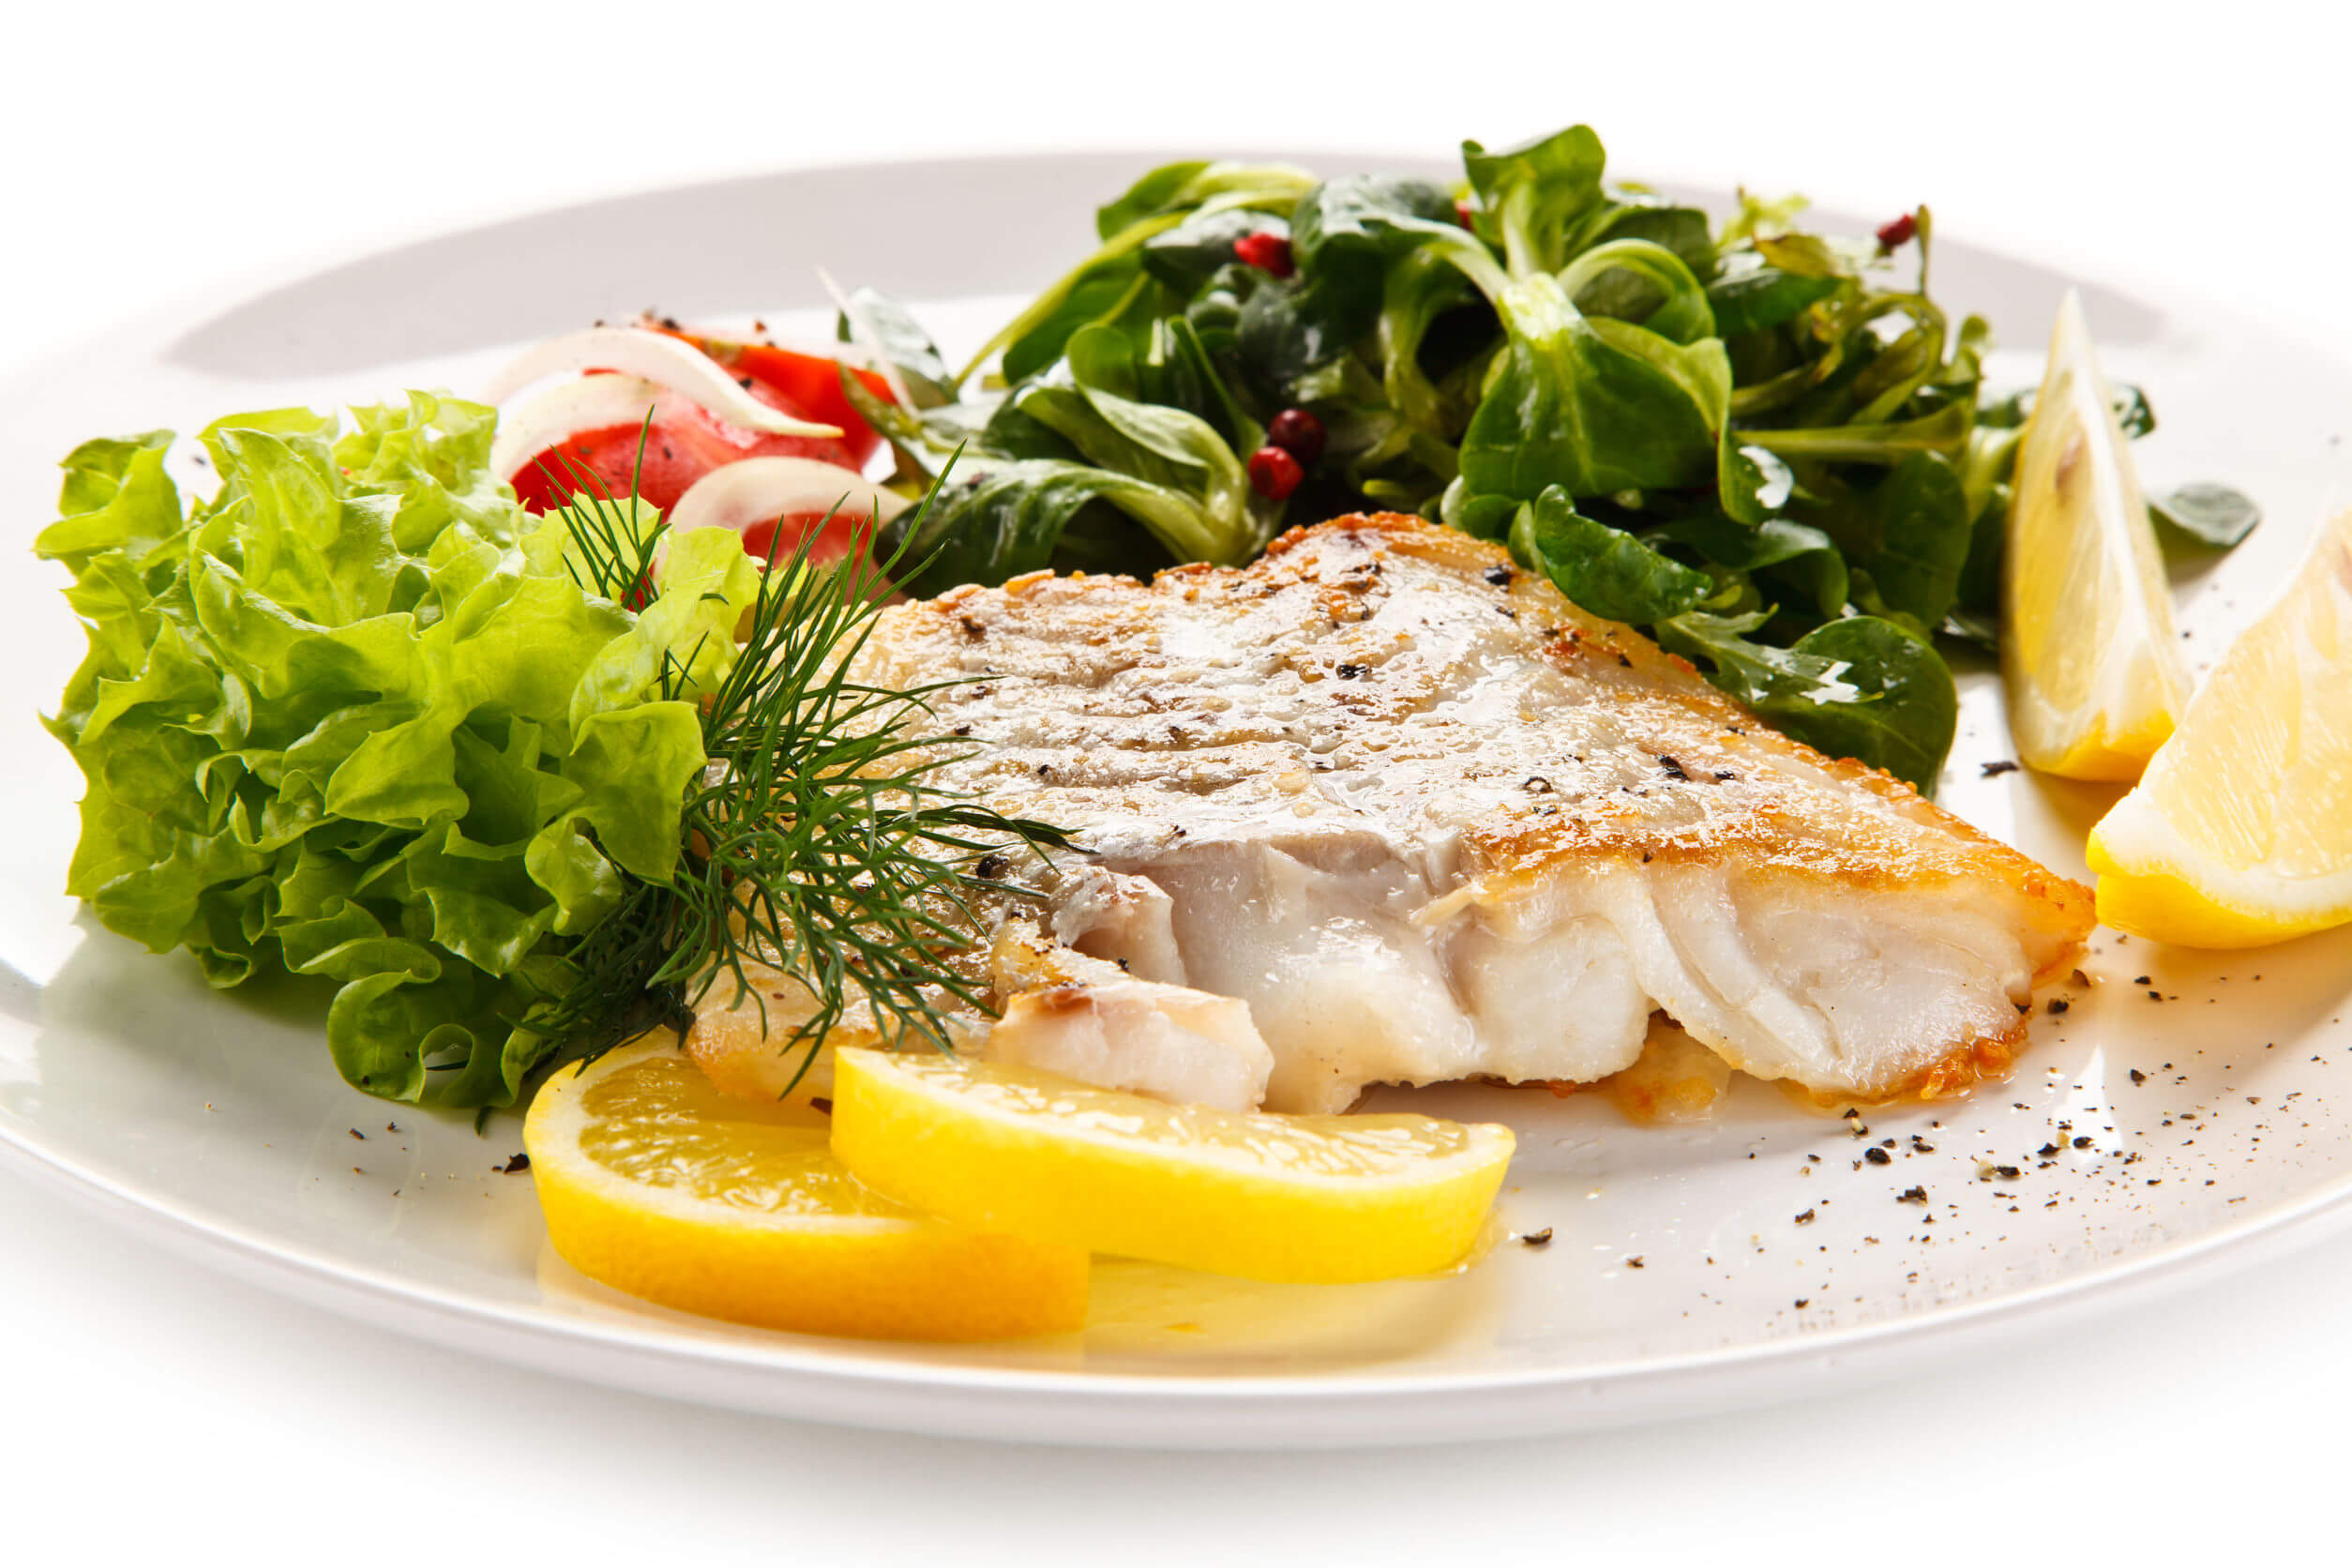 Fish is necessary for a balanced diet.